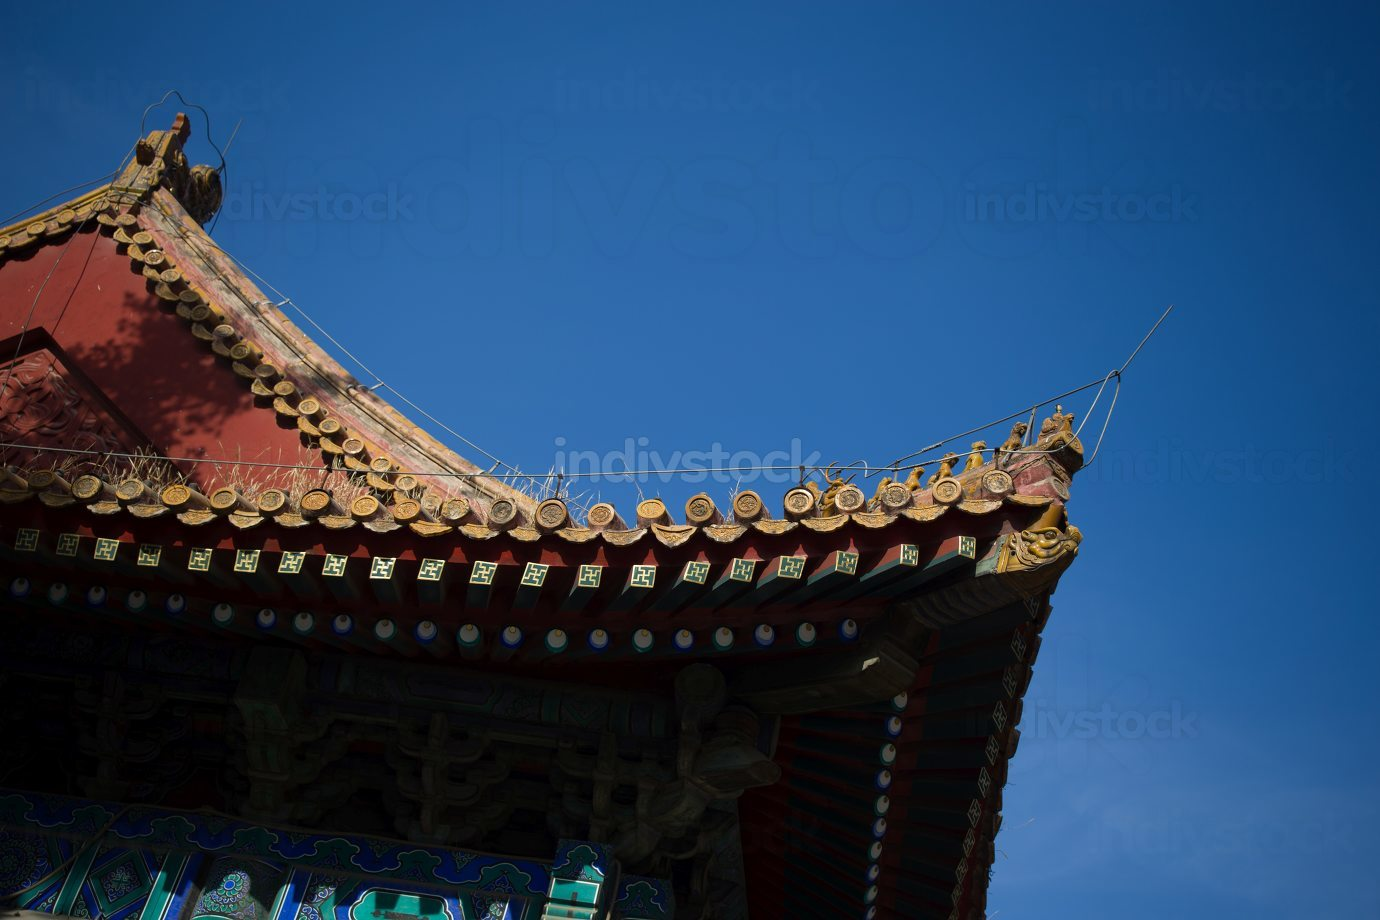 The Imperial Ancestral Temple Ancestral Hall or Taimiao